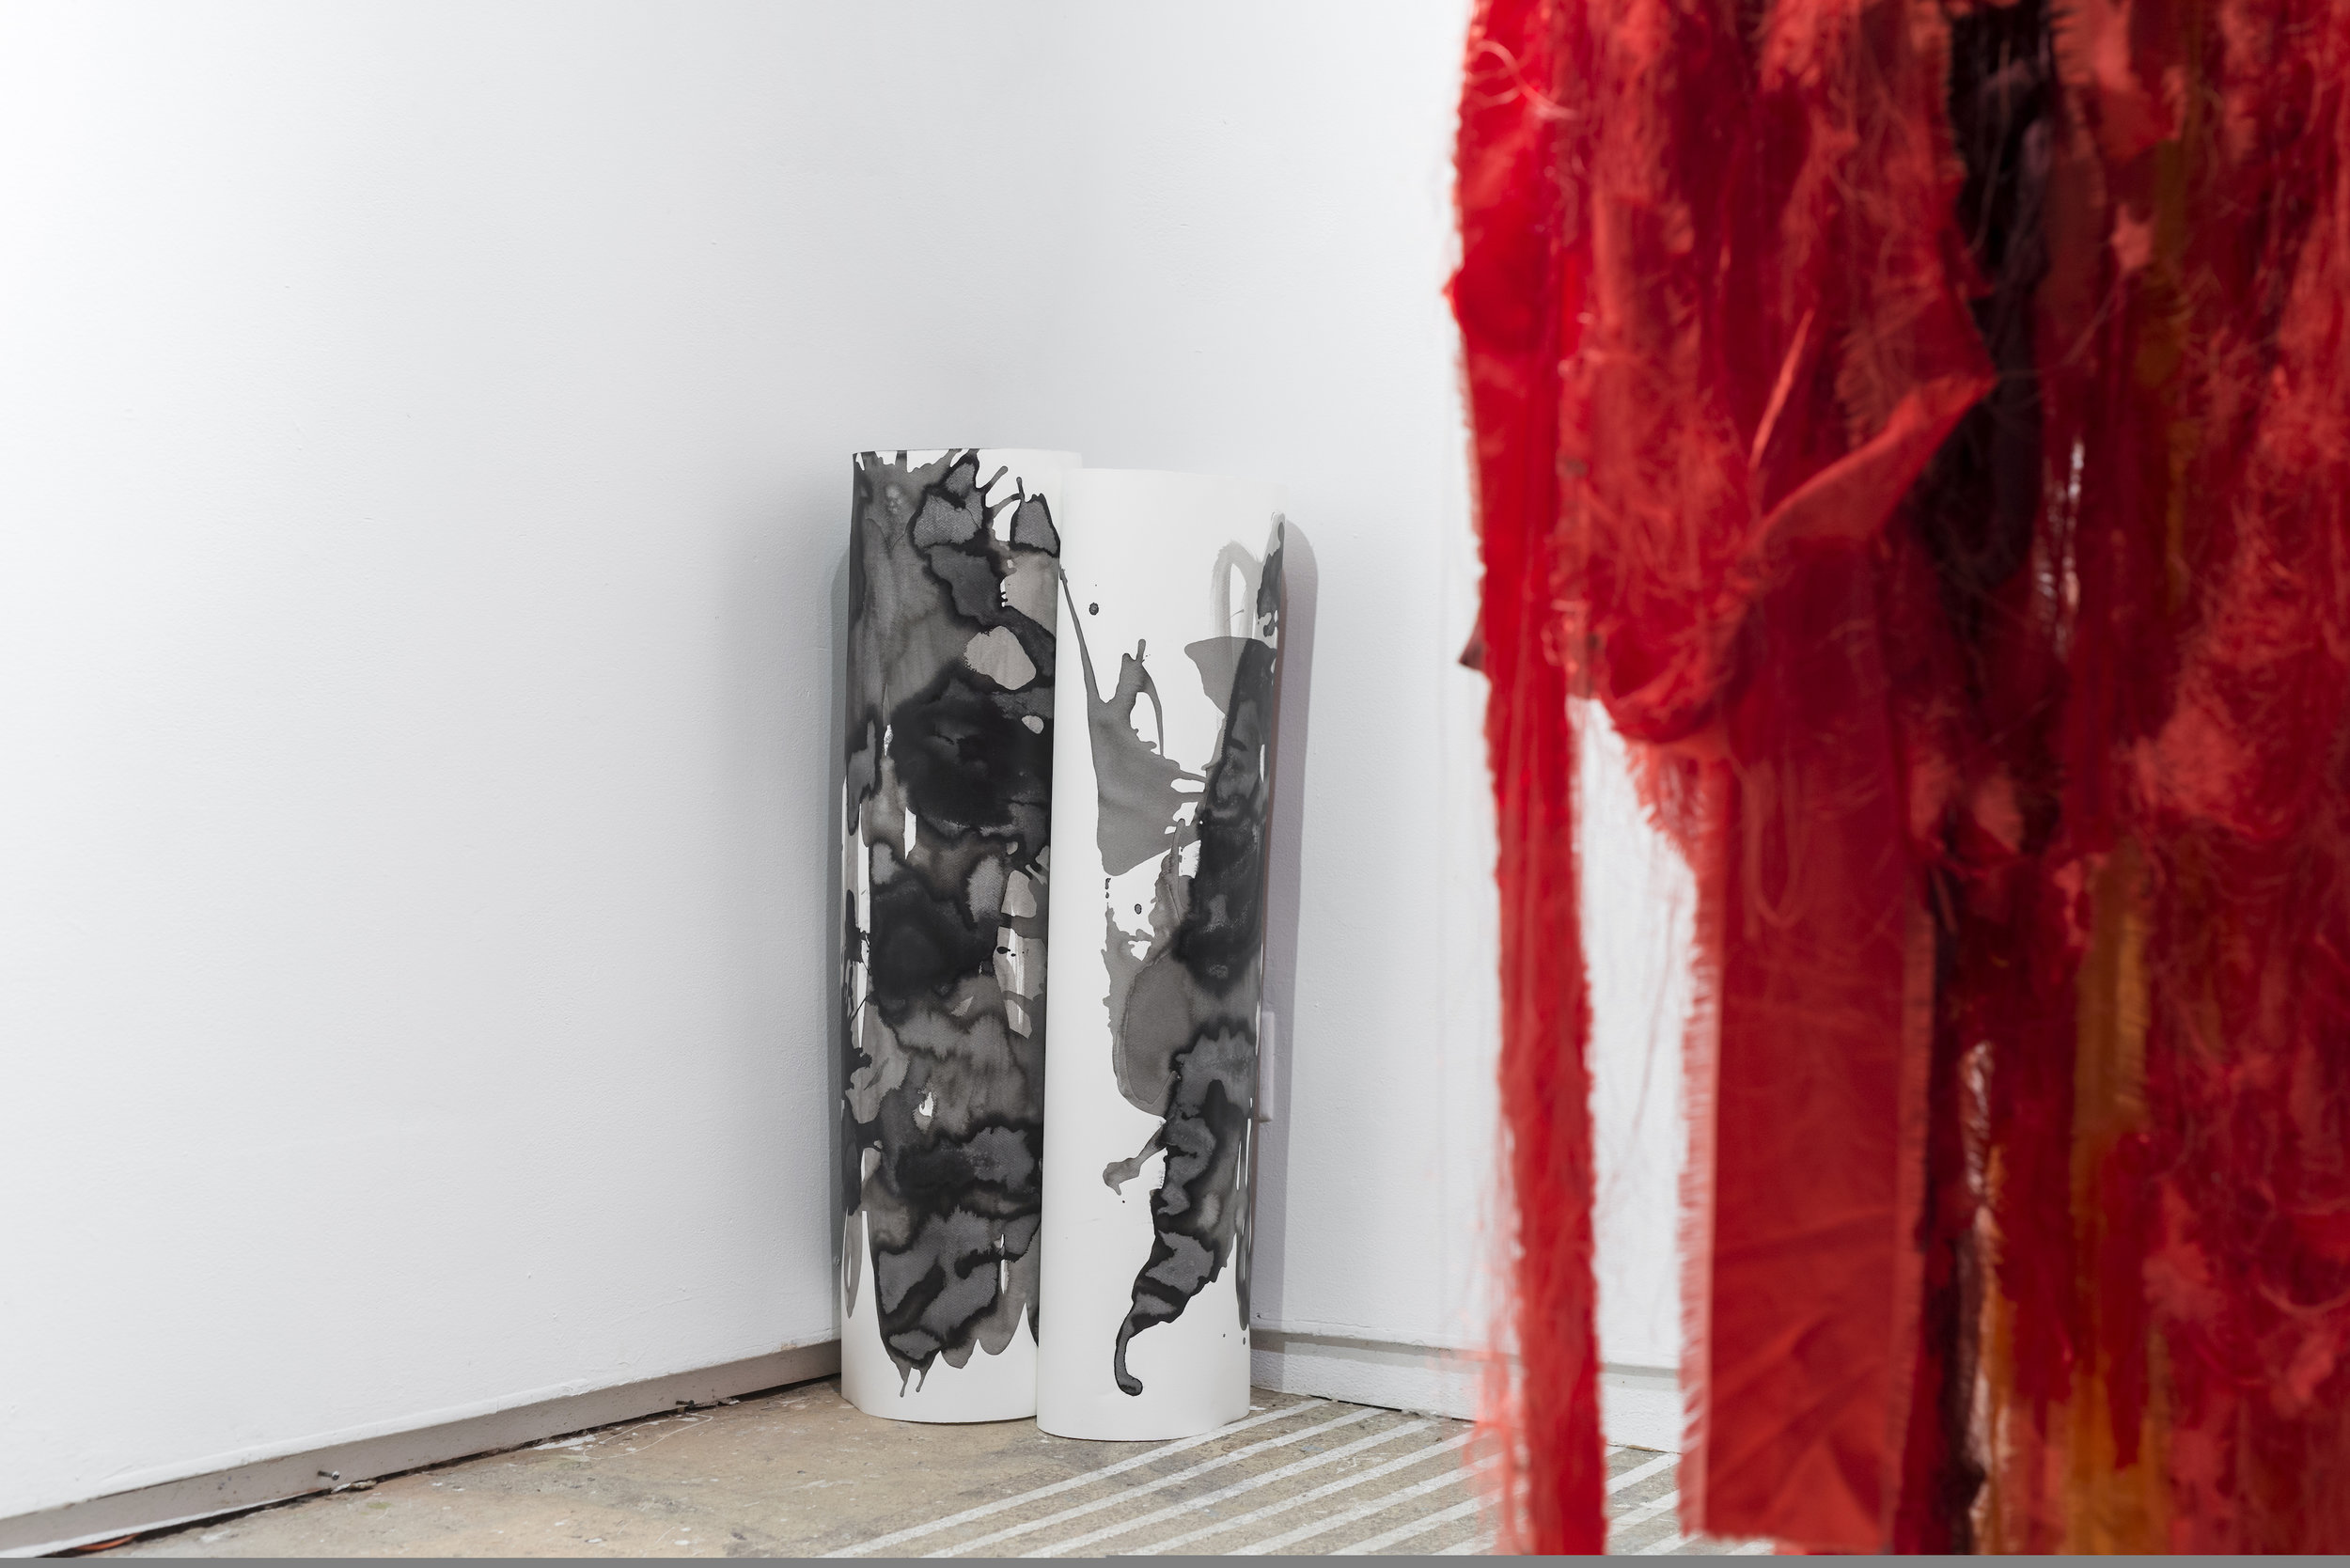 Margrethe Aanestad    Untitled,   2016   Ink on aquarelle paper   bject, dimensions variable    Elin Melberg    Float (red)  , 2015   Torn textile, embroidery, dry pastel, wood   Dimensions variable